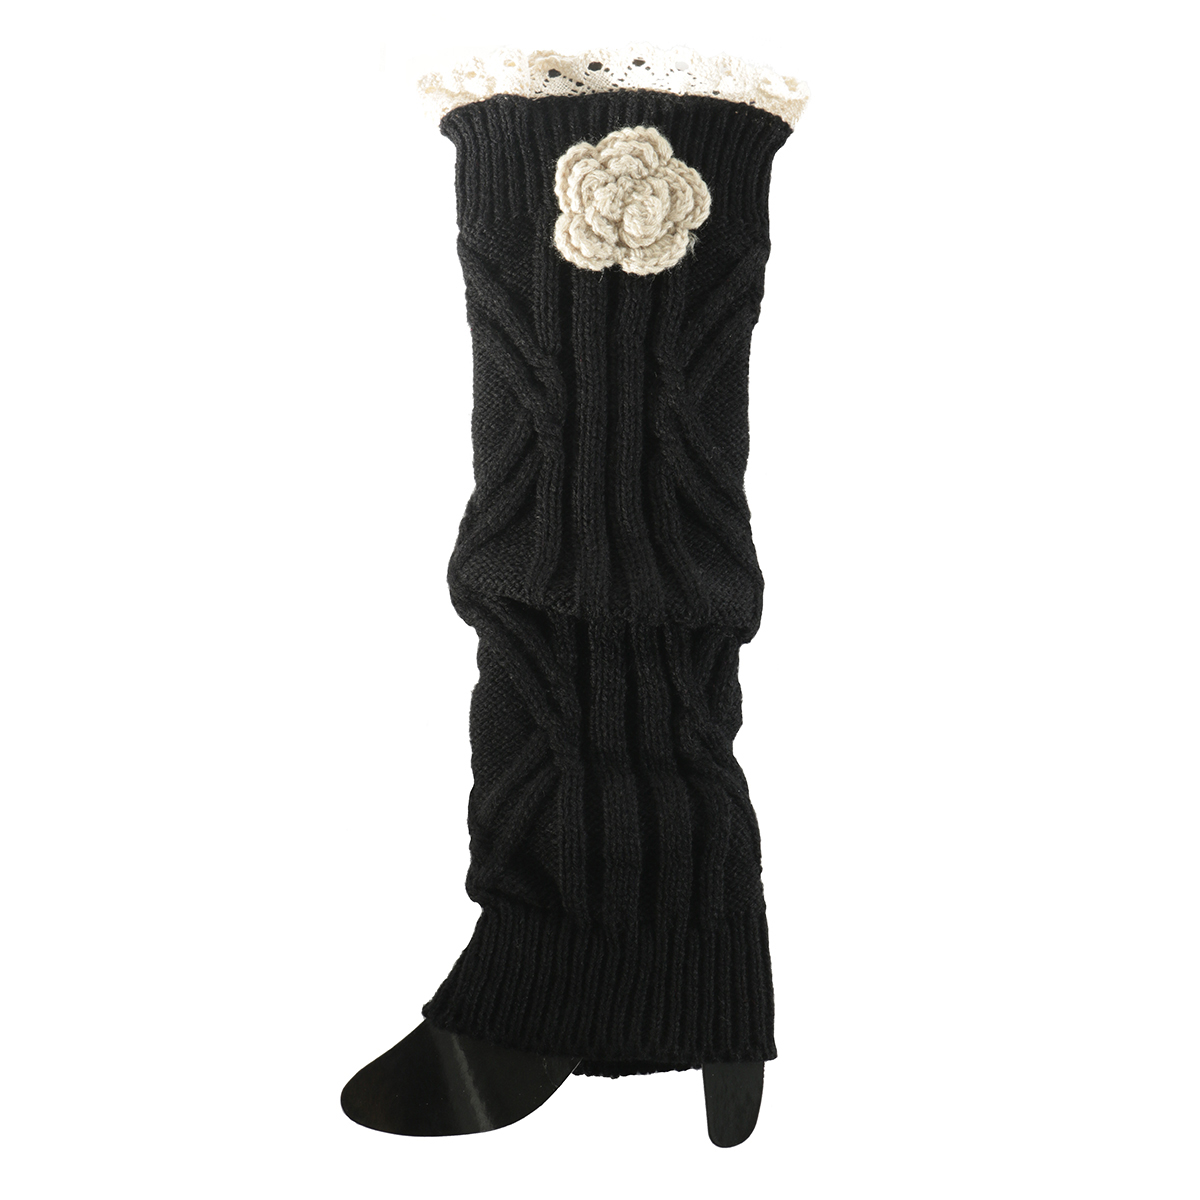 Black Crochet Flower Boot Cuff 50sp